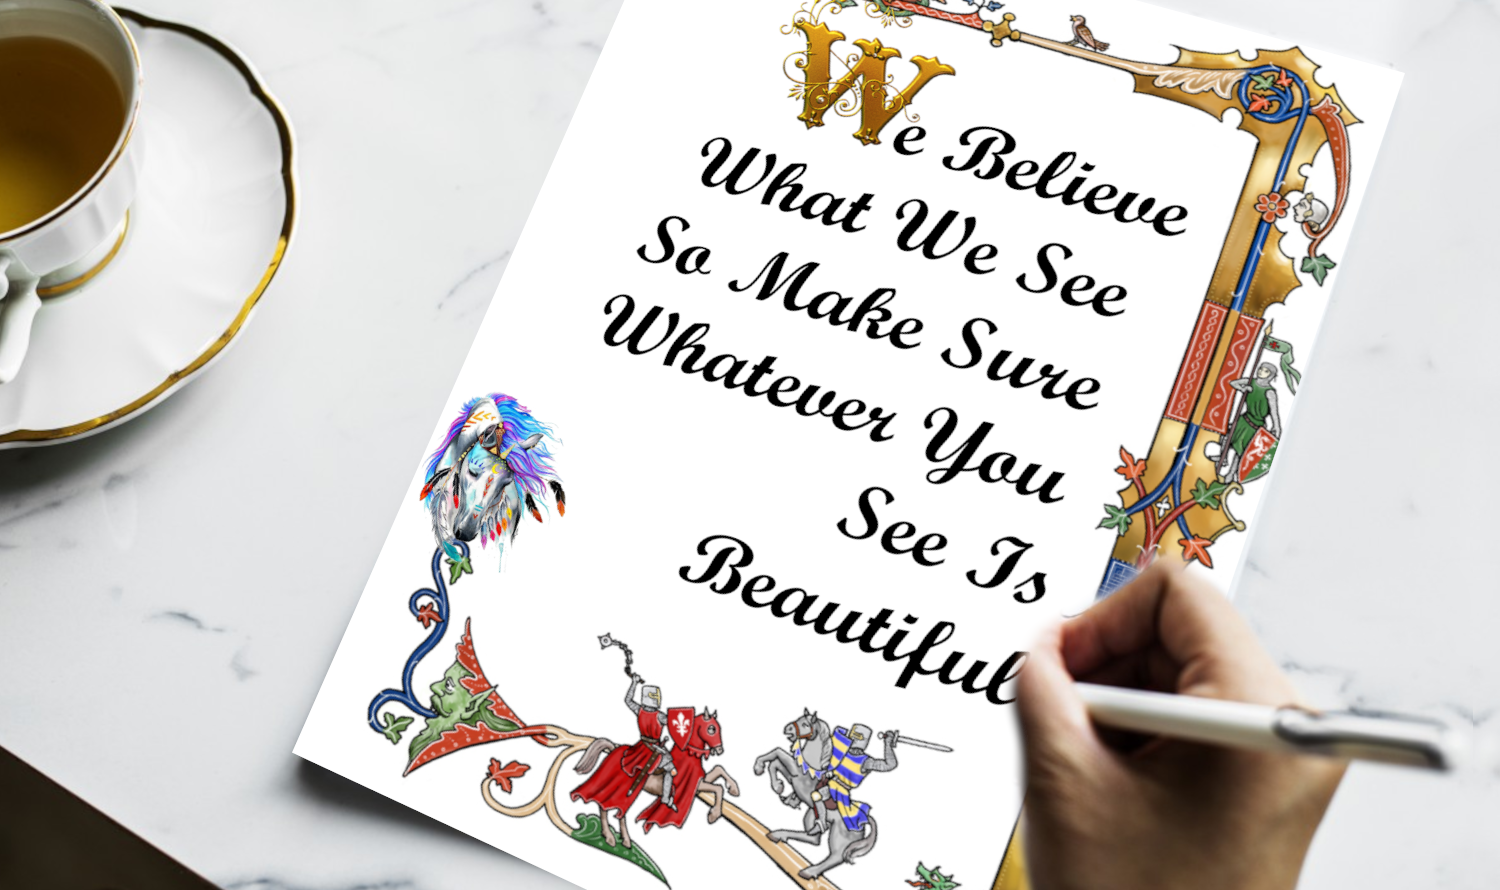 Inspirational wall art – Fill your life with beauty and watch your life change